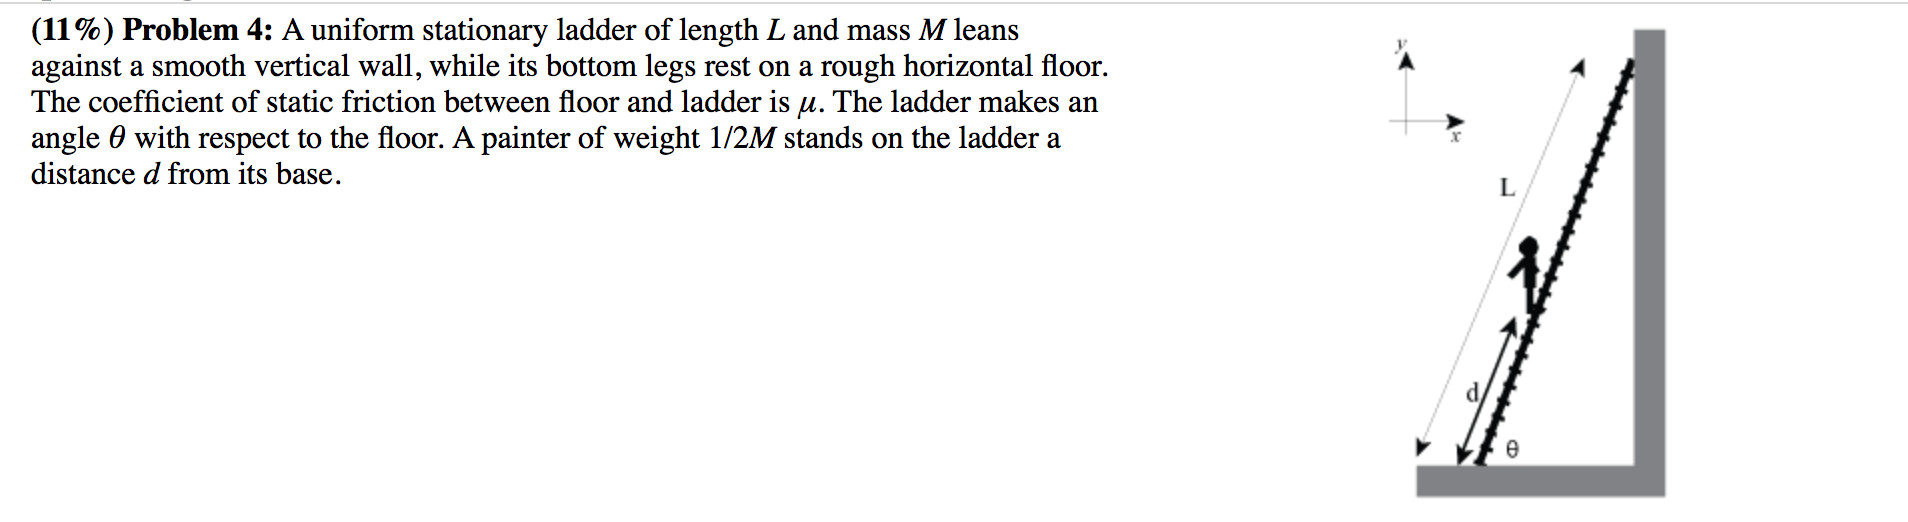 Best ideas about A Uniform Stationary Ladder Of Length L And Mass M Leans Against A Smooth Vertical Wall . Save or Pin Physics Archive June 16 2016 Now.